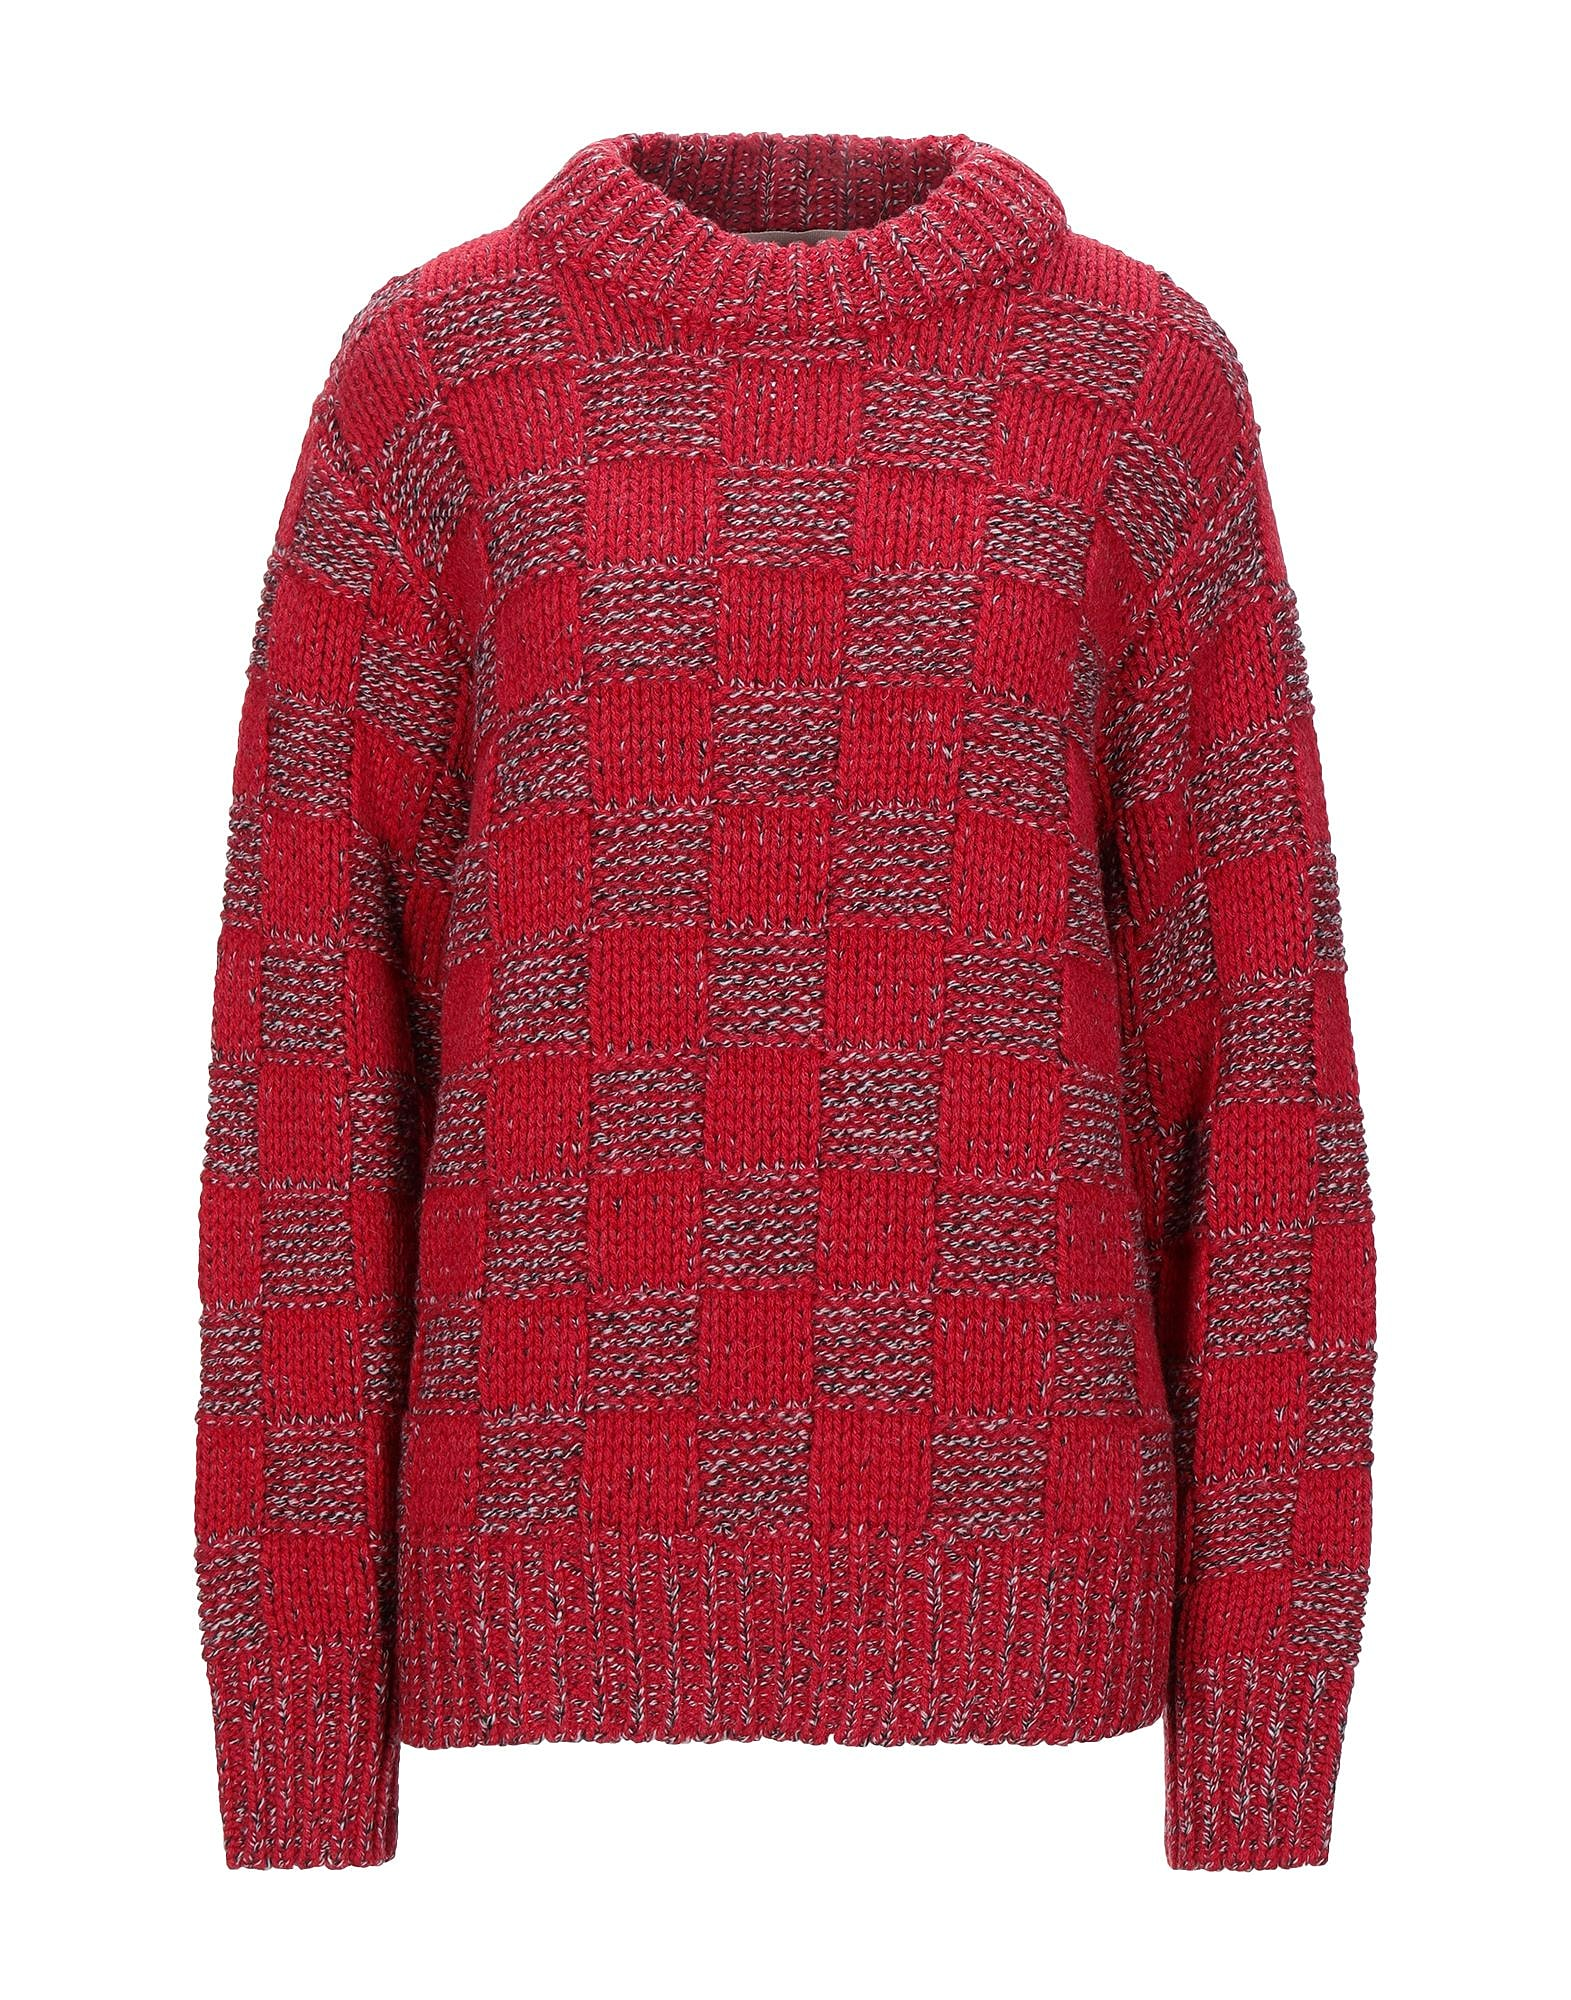 Marni Checked Wool Sweater